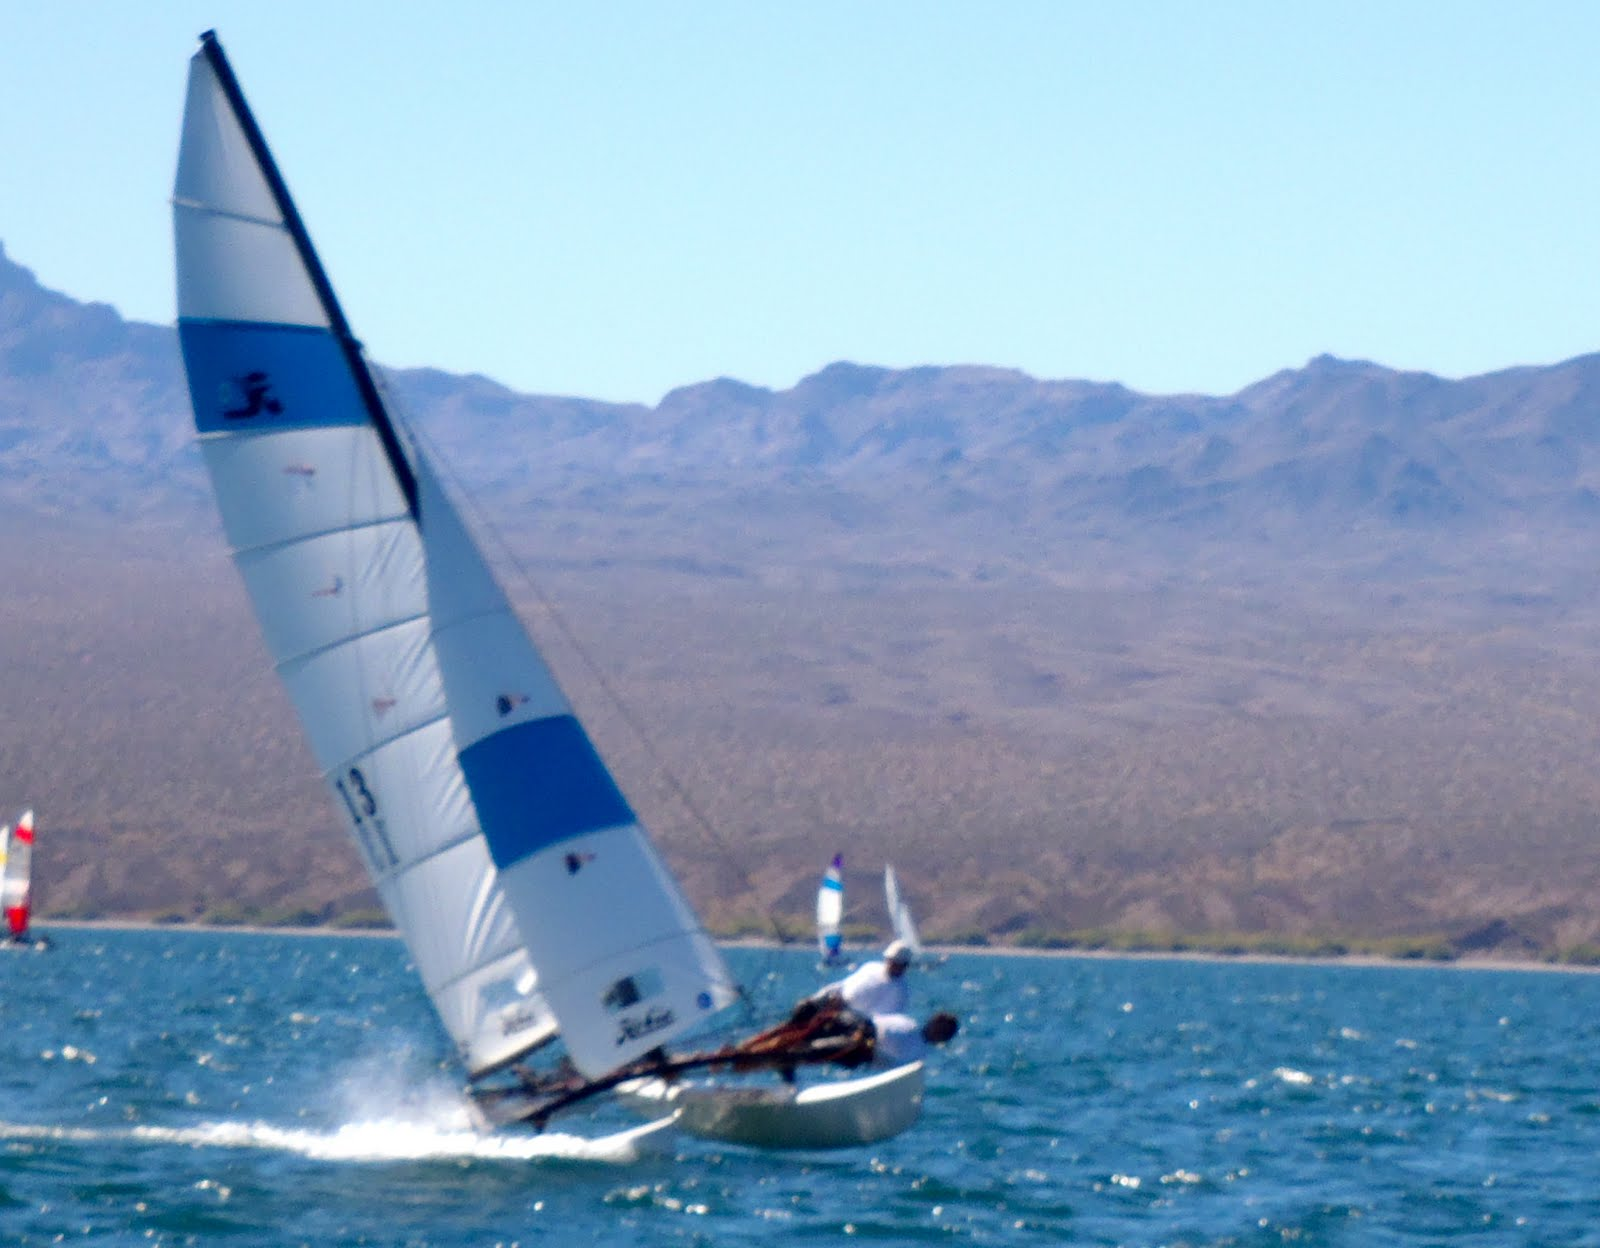 ccc988181ef Wind conditions during the days of the N.A. Nationals varied from 12 – 22  knots. The course was a start to buoy A of 1.2 miles and courses were  typically ...